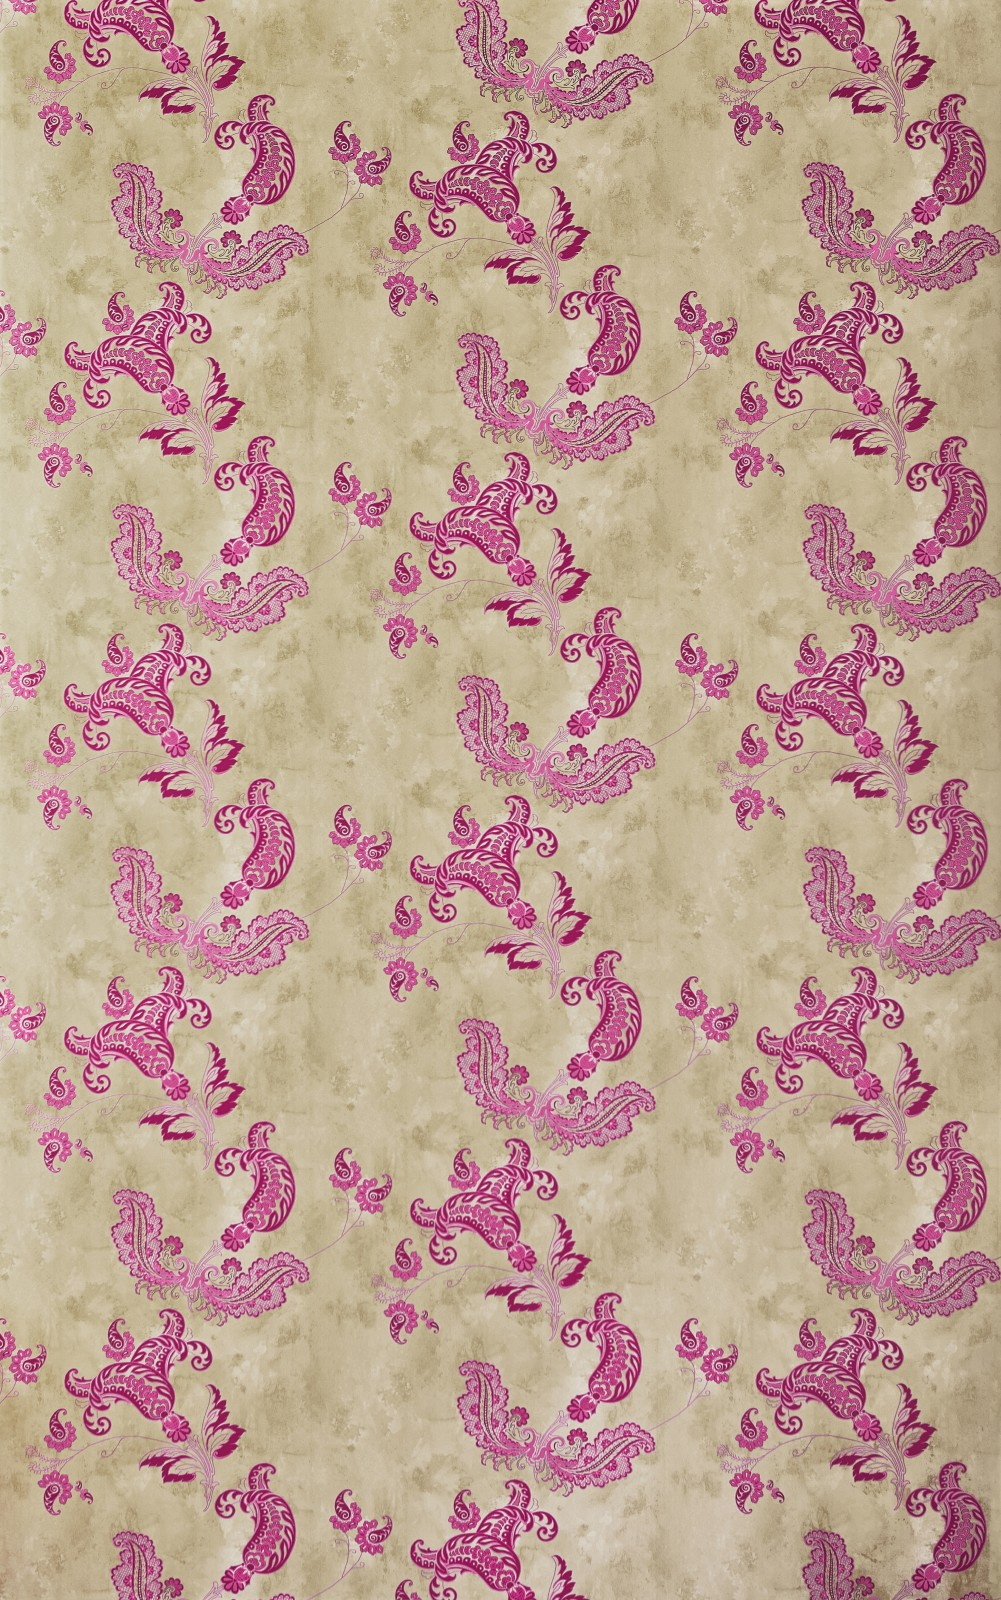 Paisley Wallpaper Hot Pink on Tea Stain